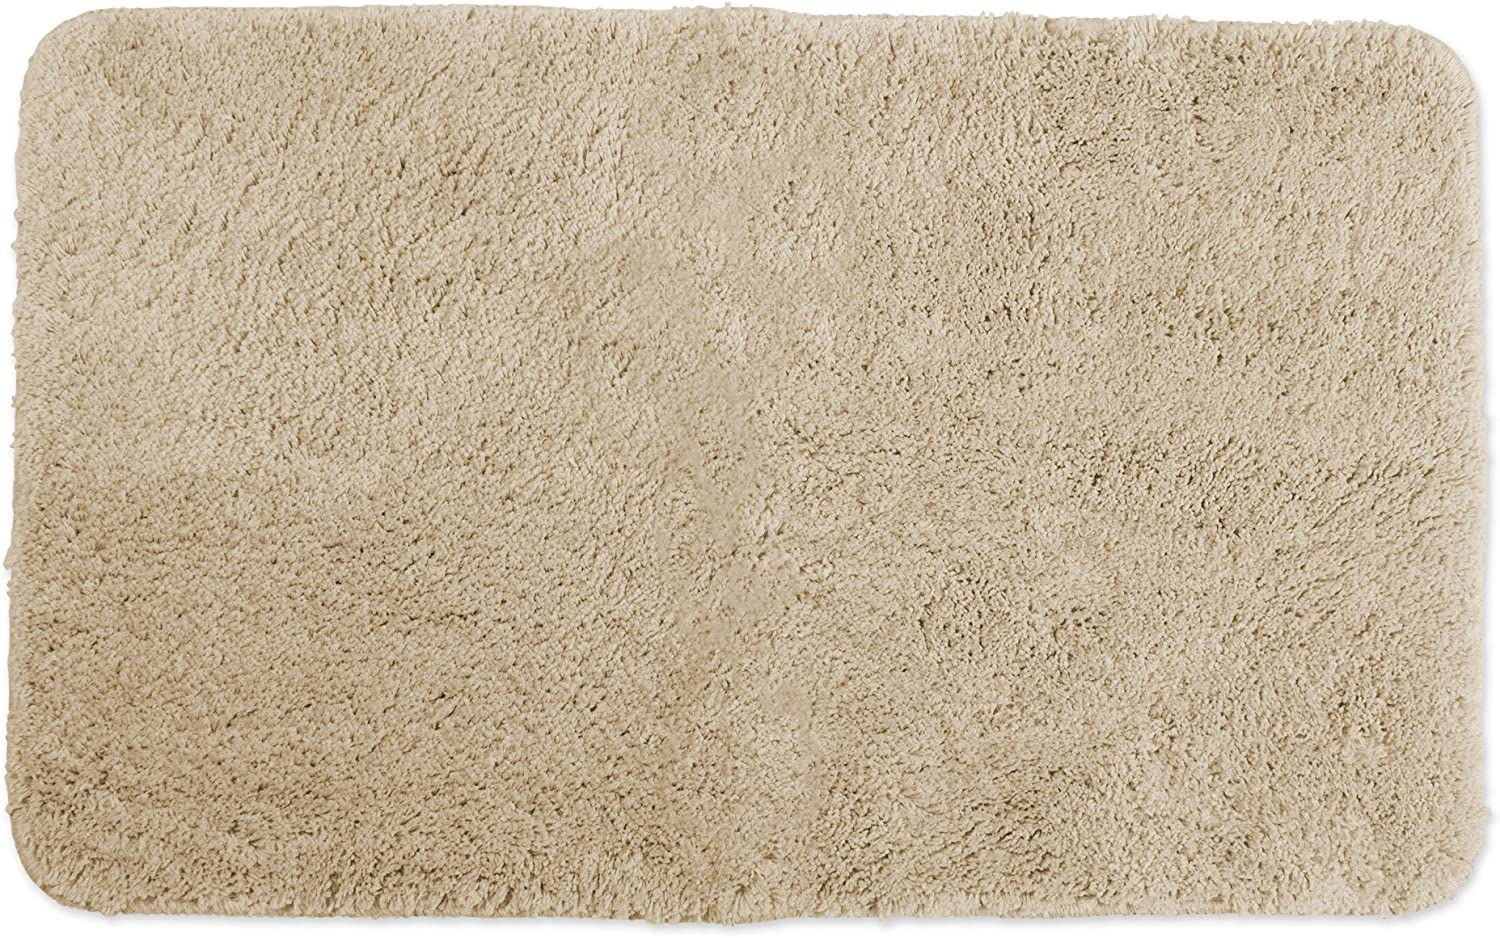 "Ultra Soft Absorbent Spa Microfiber Bath Rug, 24x40"", Machine Washable, Perfect Bath Mat for Shower, Vanity, Bath Tub, Sink, and Toilet-Pebble"